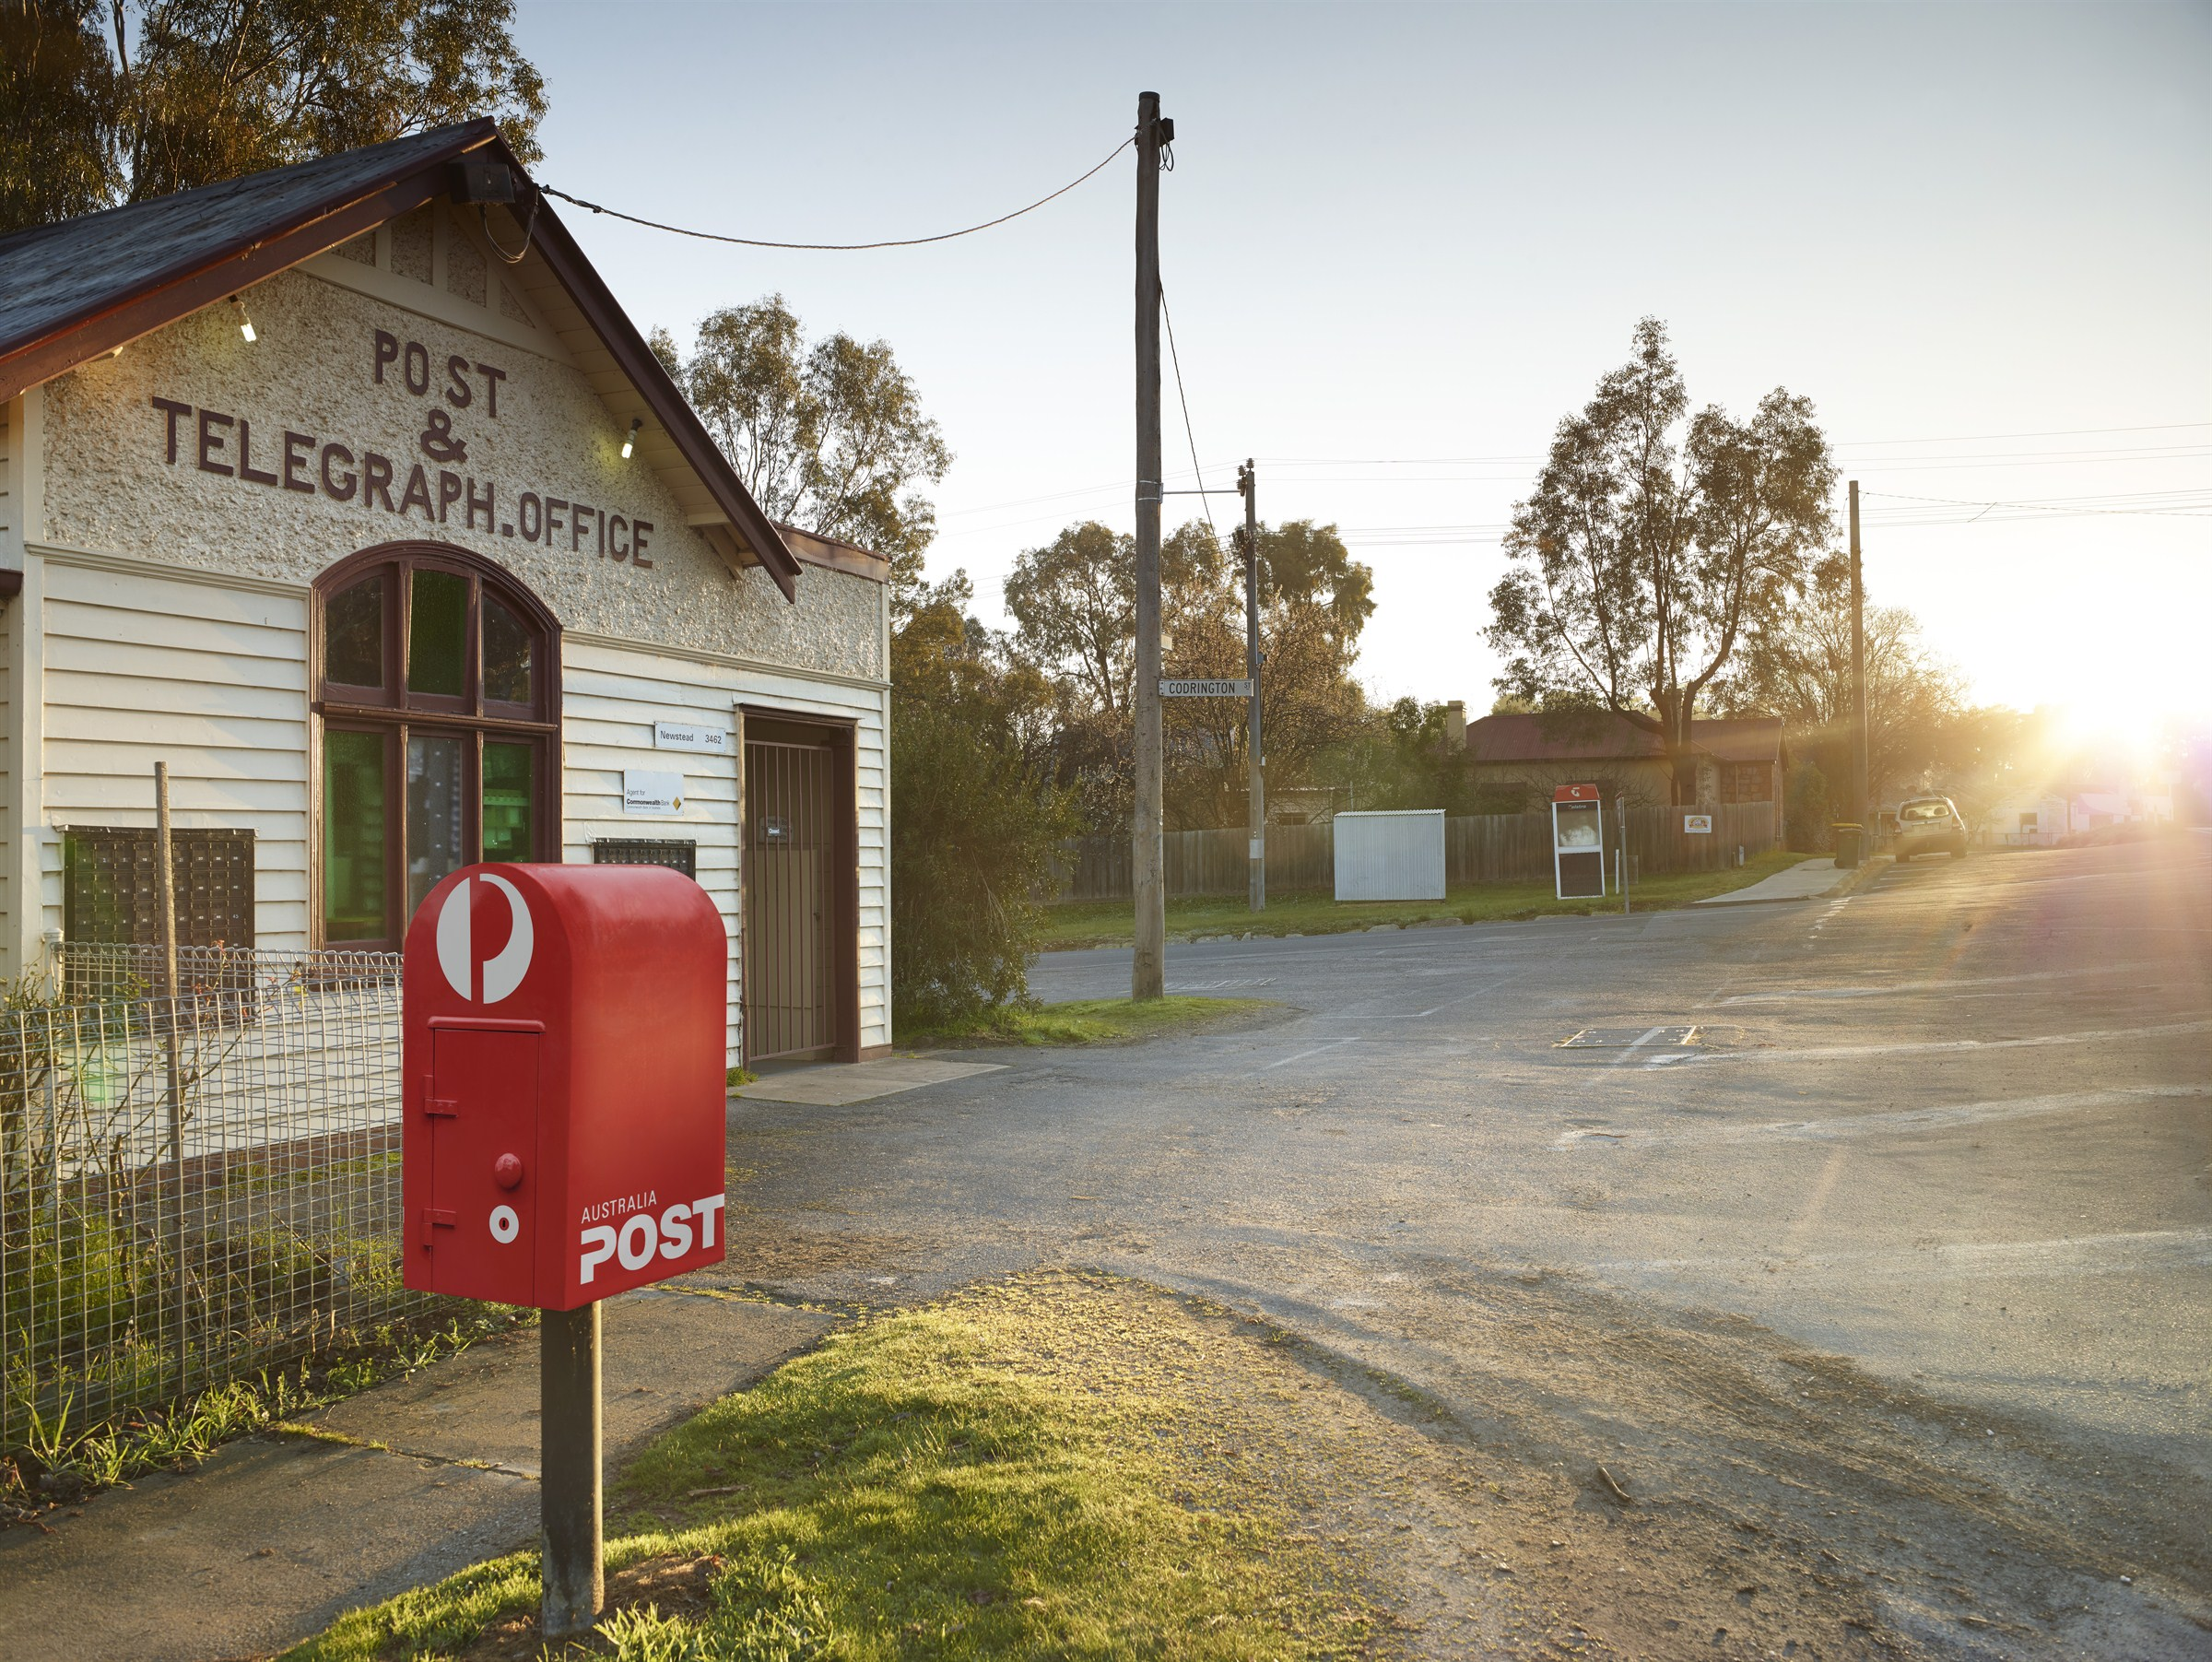 Australia Post further strengthens its regional and rural Post Office network